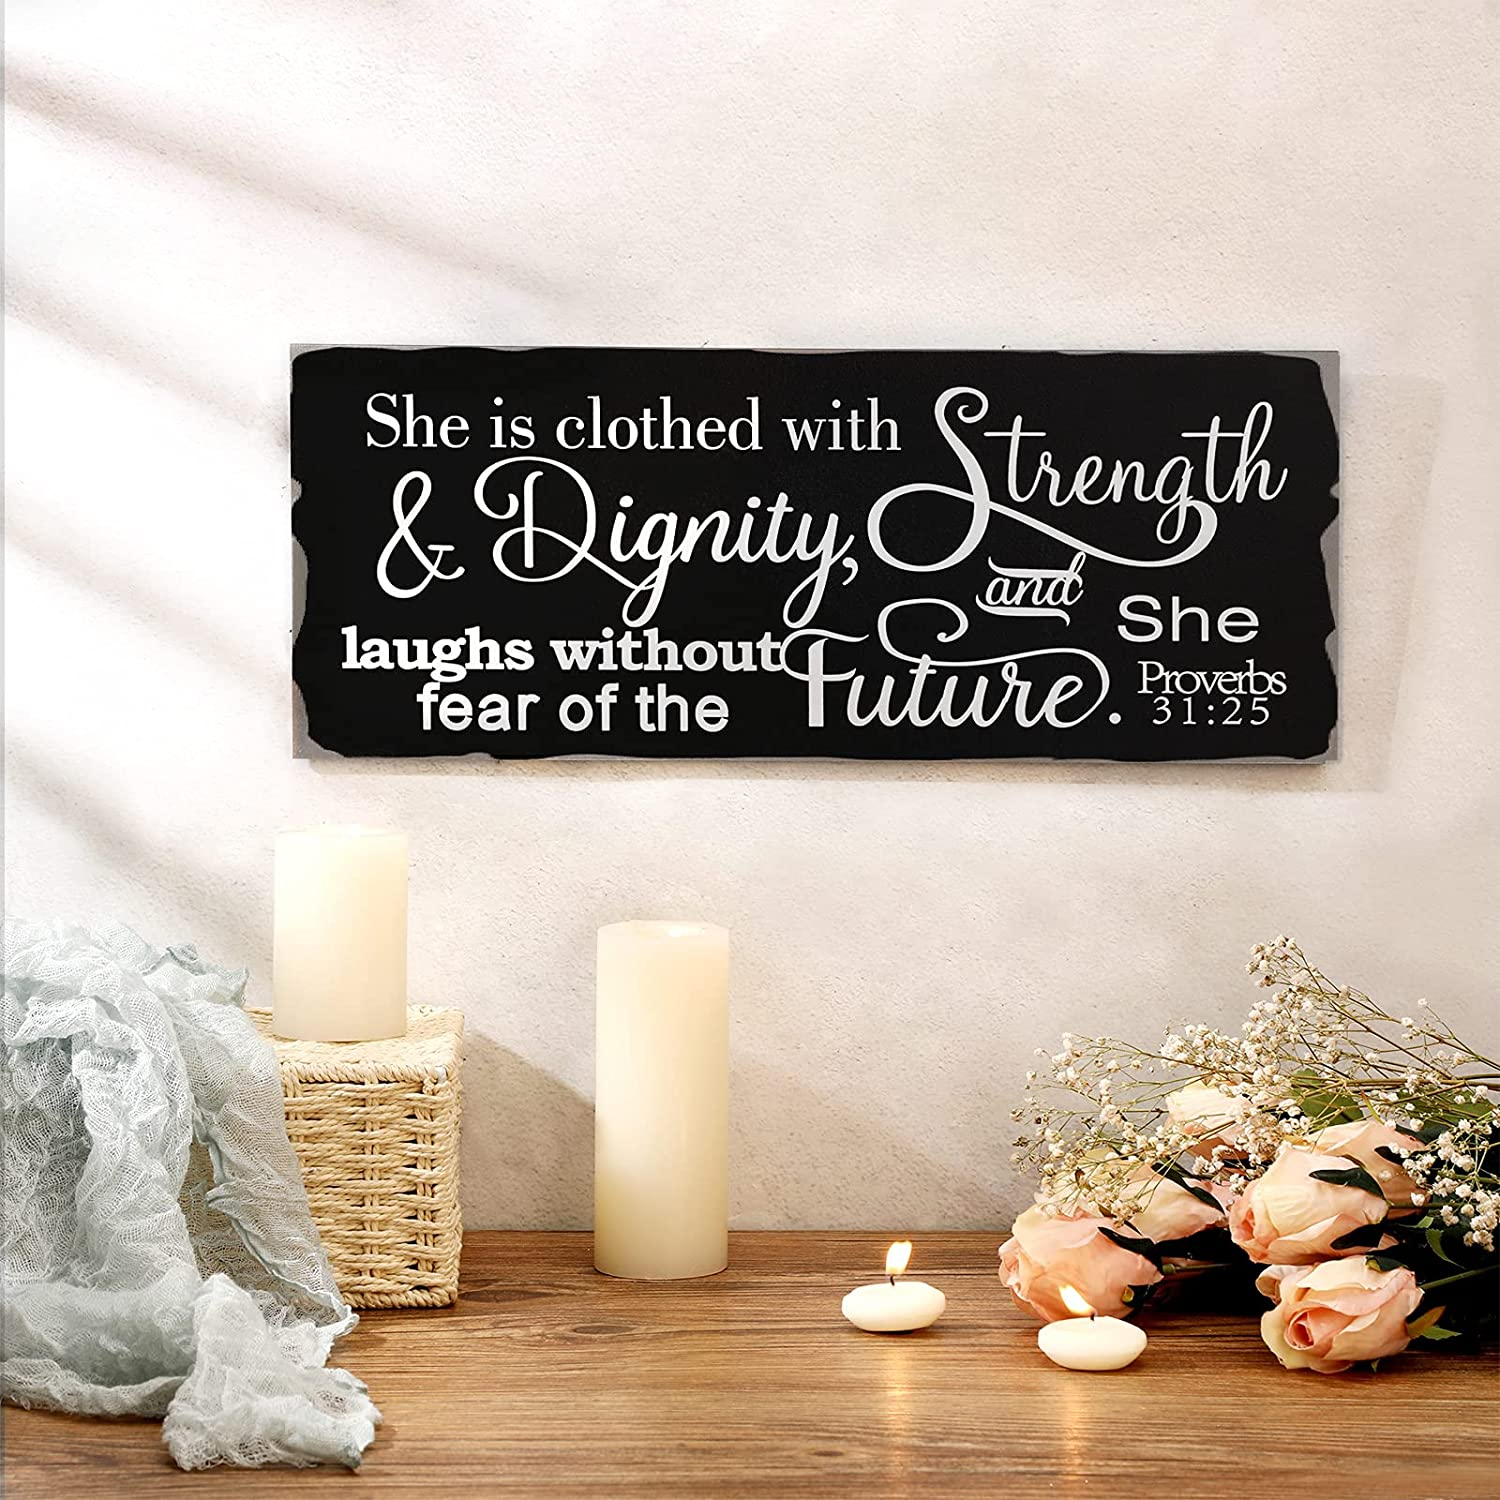 Jetec She is Clothed with Strength and Dignity and Laughs Without Fear of The Future Framed Wooden Hanging Sign Rustic Inspirational Quotes Proverbs 31:25 Wall Home Decor for Porch Gallery